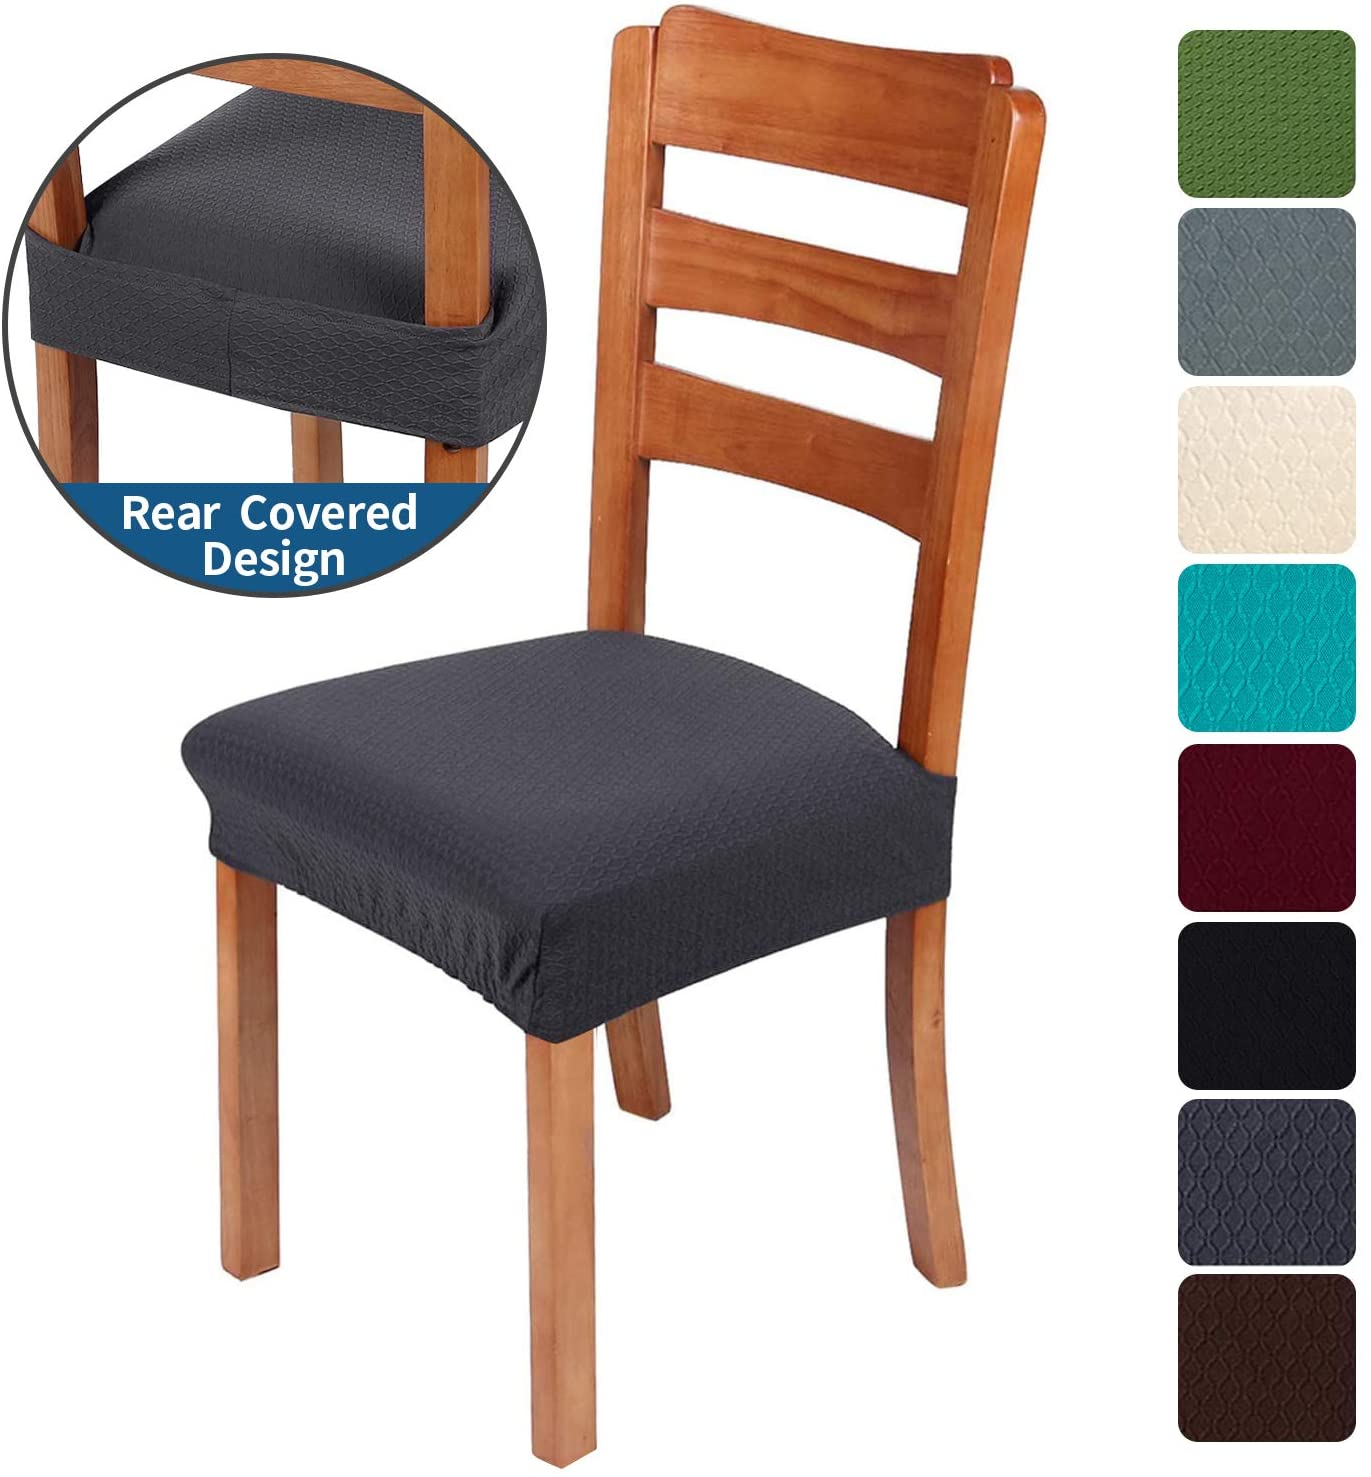 smiry Stretch Jacquard Chair Seat Covers for Dining Room, Removable Washable Anti-Dust Chair Seat Protector Slipcovers - Set of 2, Dark Grey